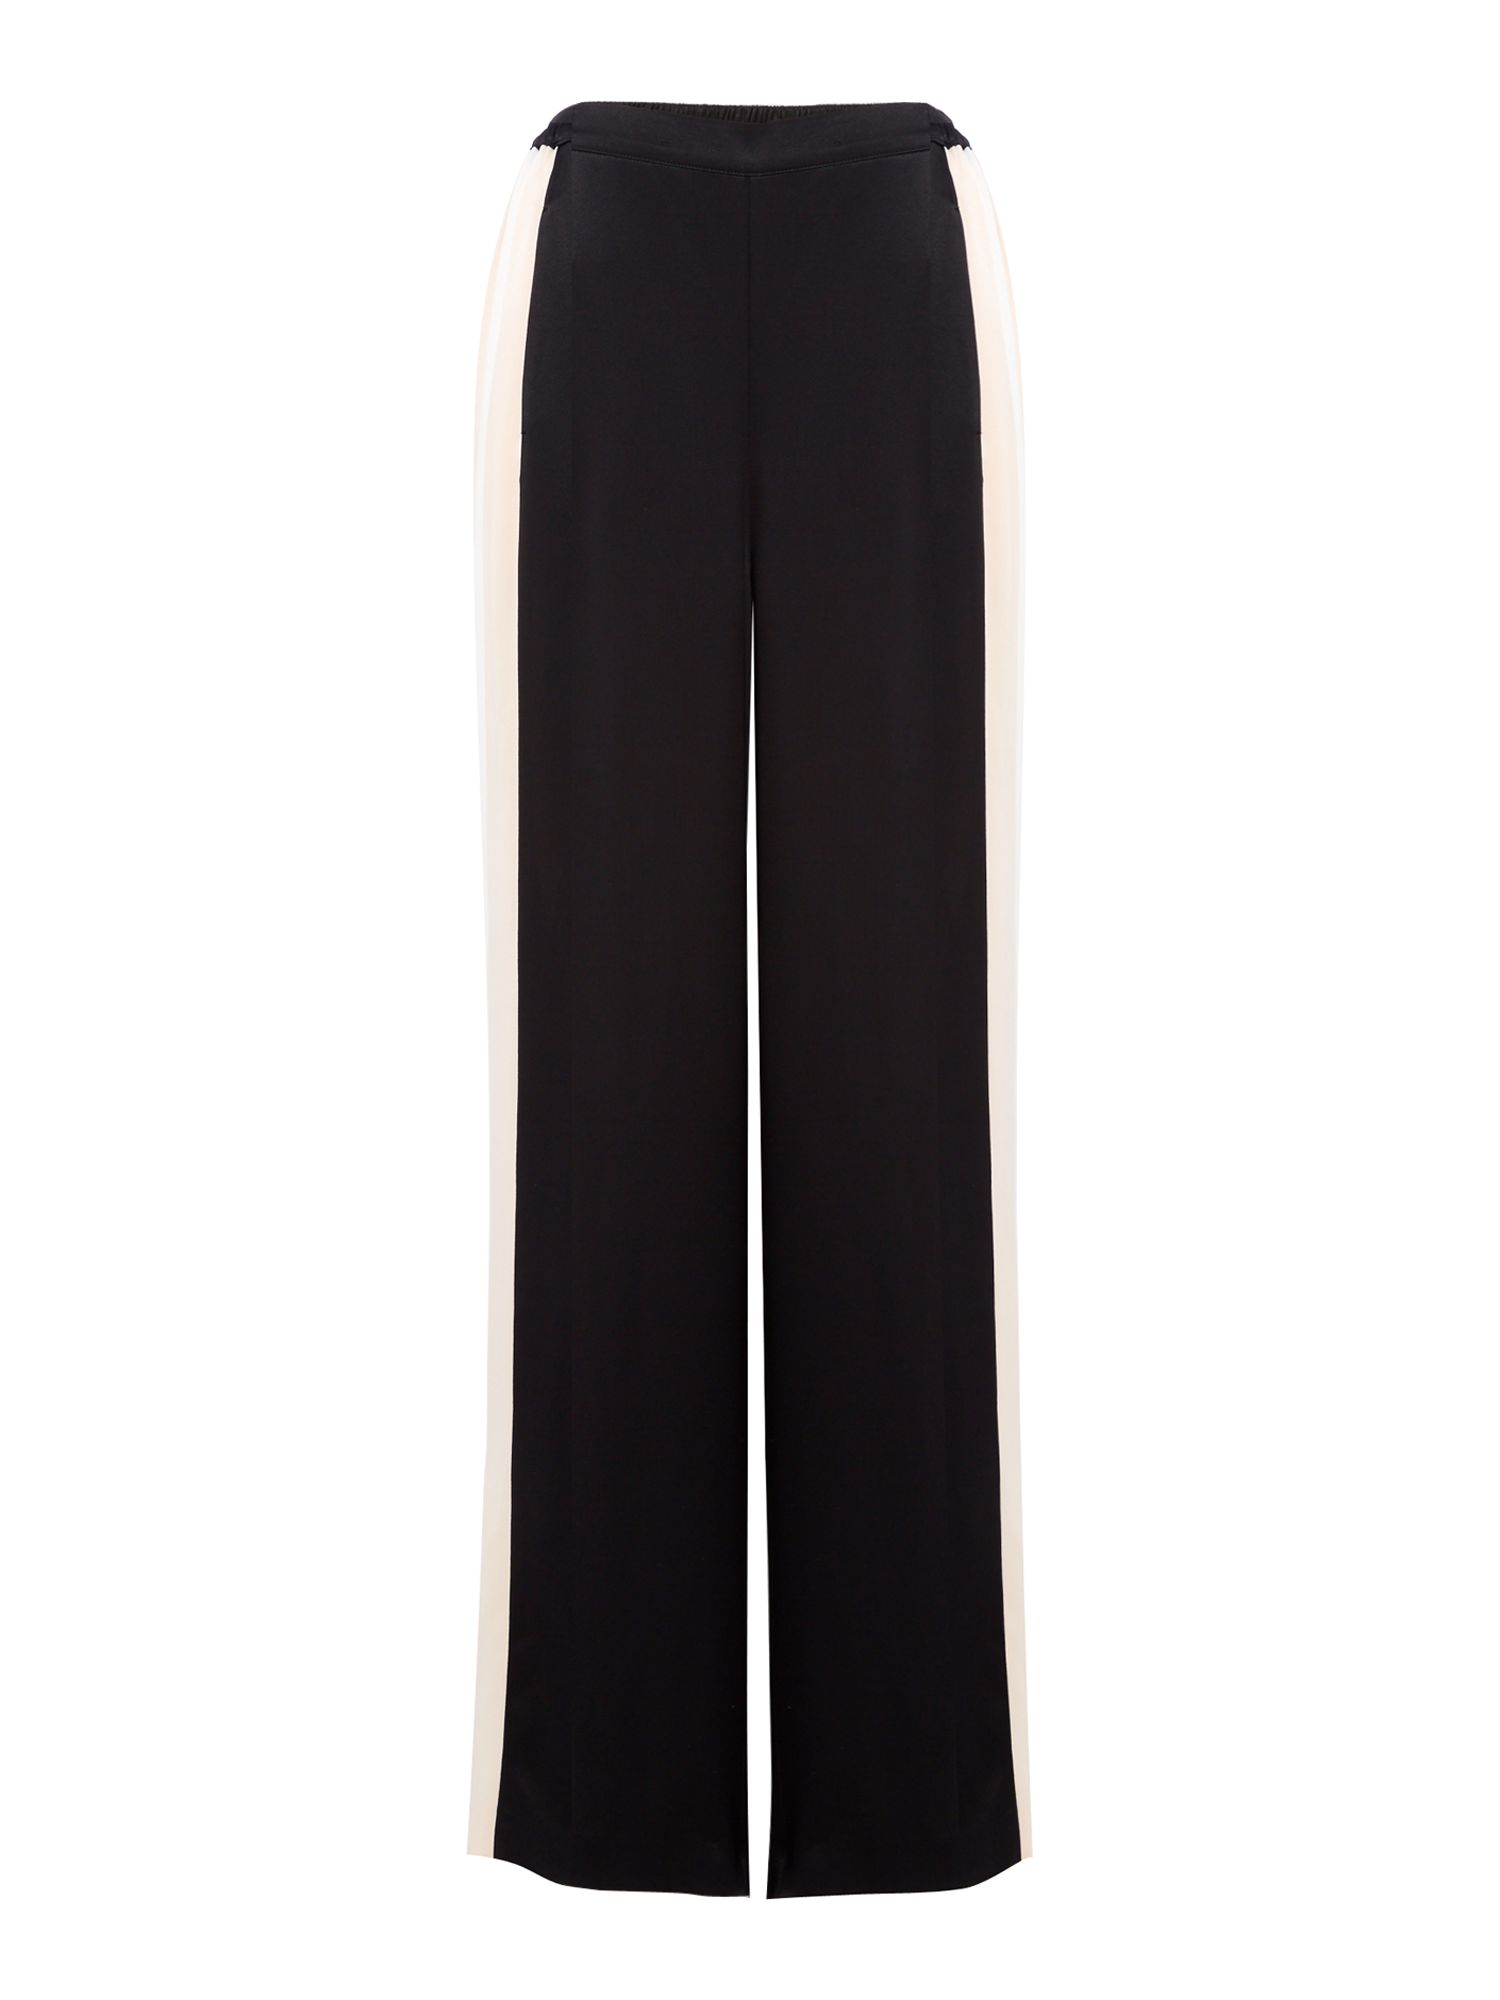 Label Lab Satin Stripe Trouser, Black